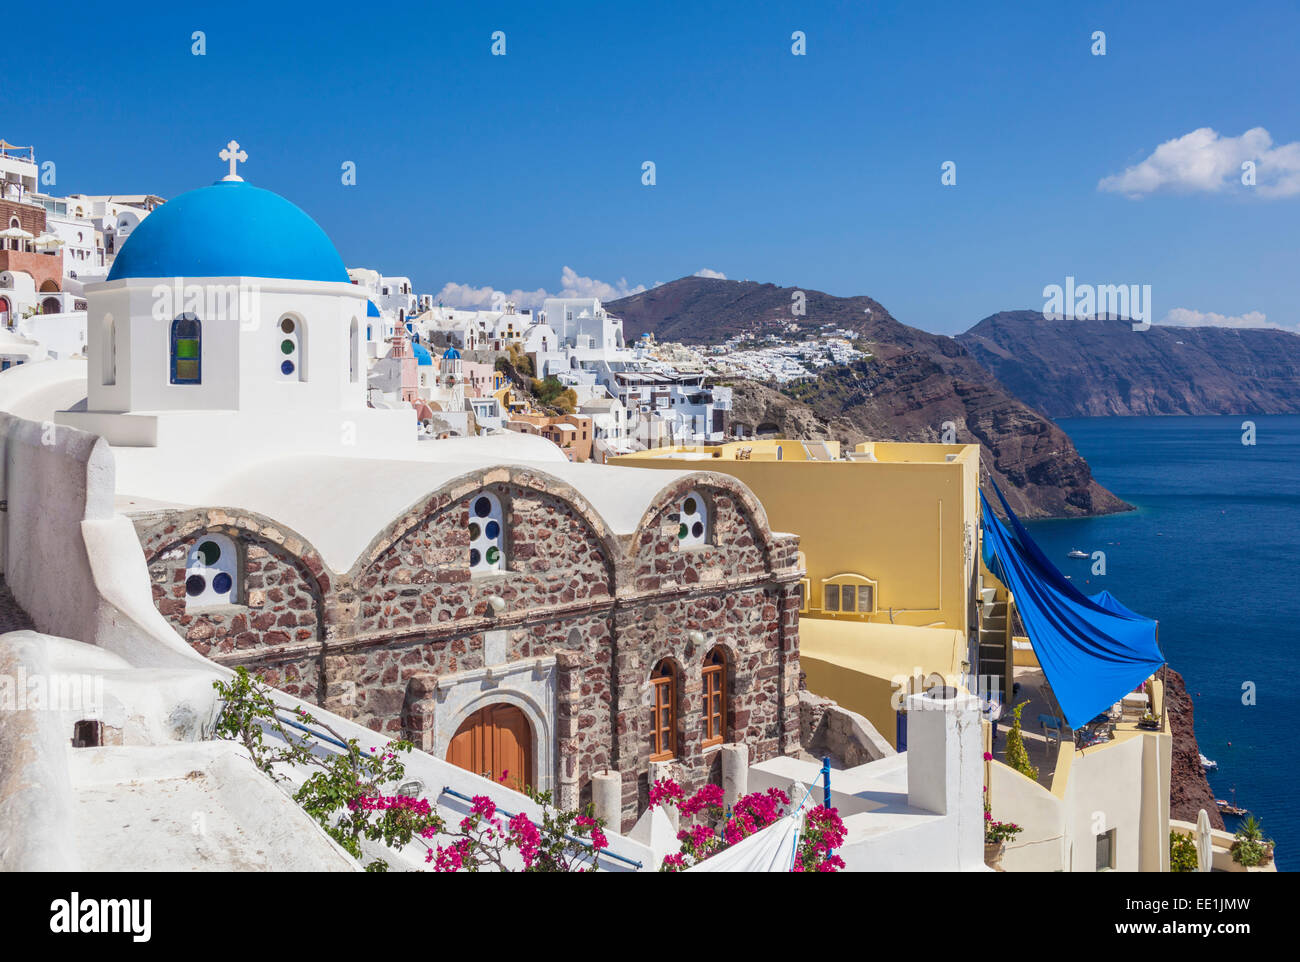 Greek church of St. Nicholas with blue dome, Oia, Santorini (Thira), Cyclades Islands, Greek Islands, Greece, Europe - Stock Image